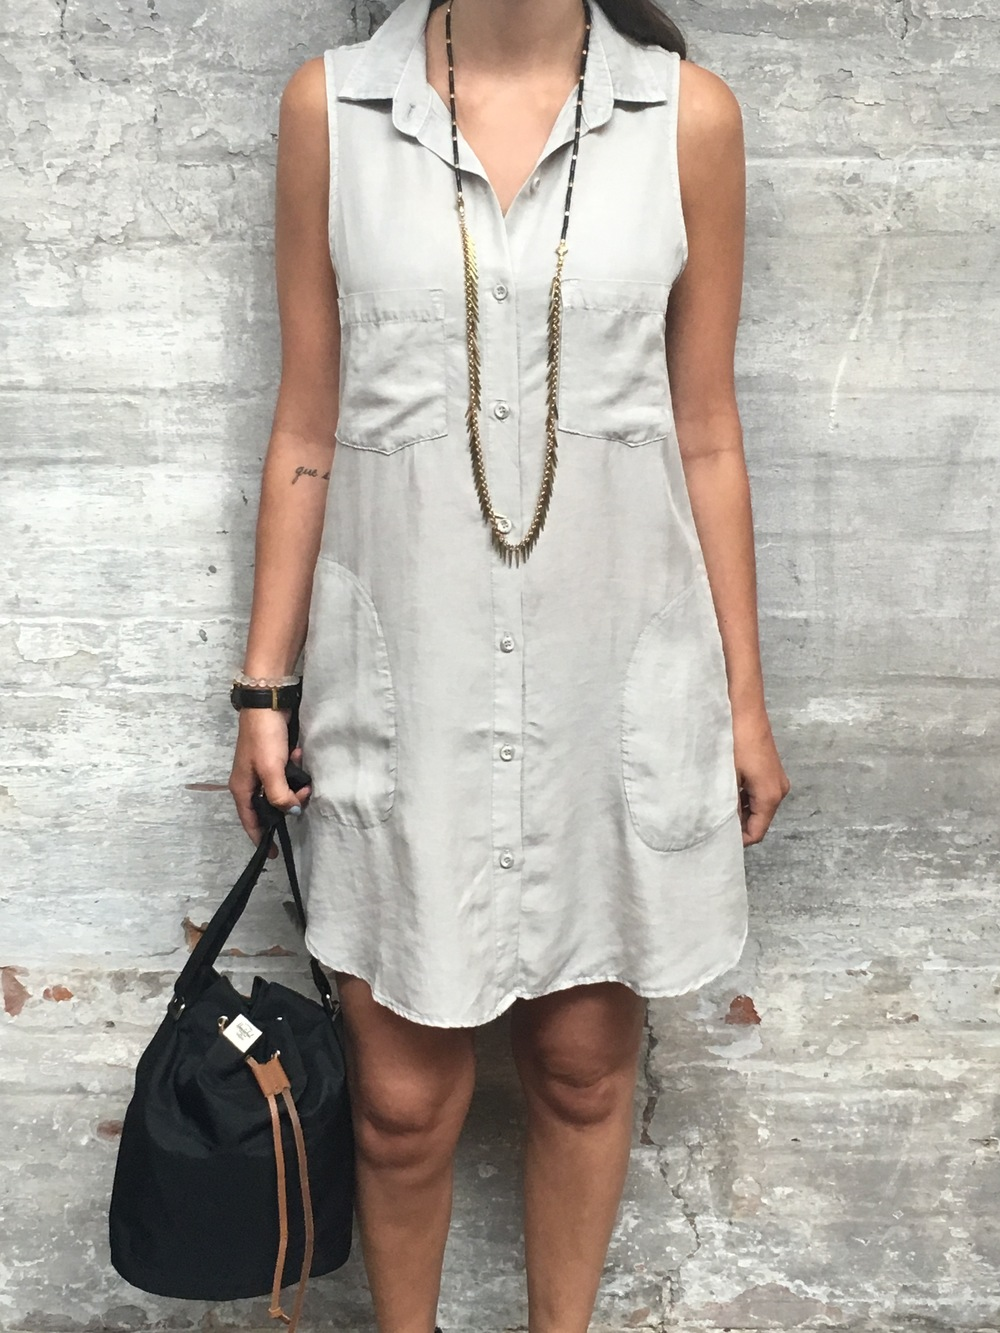 Bella Dahl Sleevless Dress $210 Herschel Bucket Bag $60 Jenny Bird Palm Rope $95